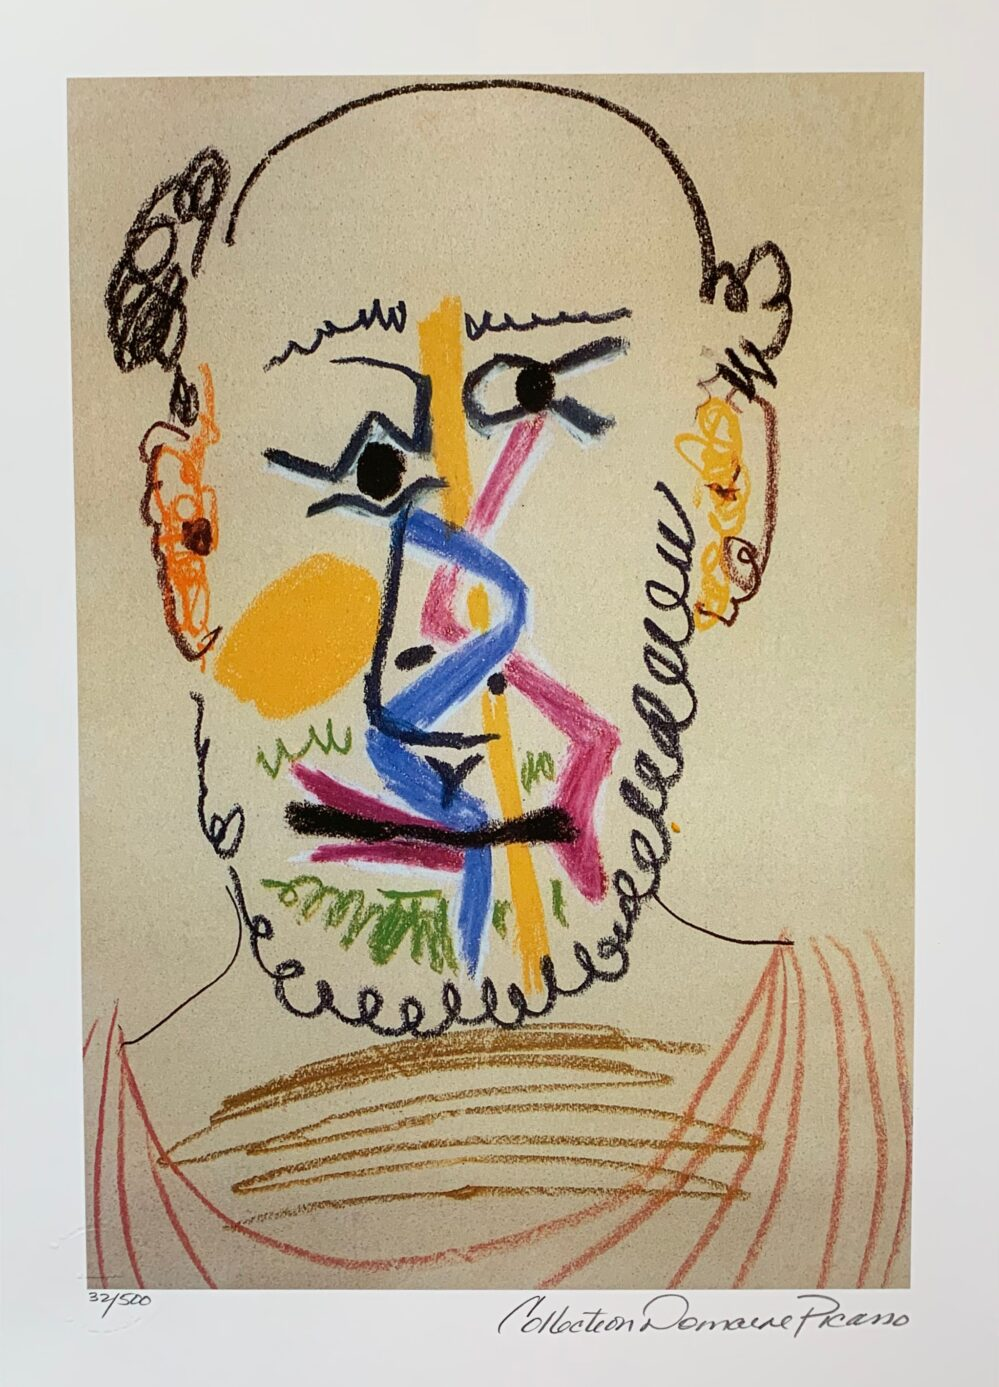 Pablo Picasso HALF BALD MAN WITH BEARD Estate Signed Limited Edition Small Giclee